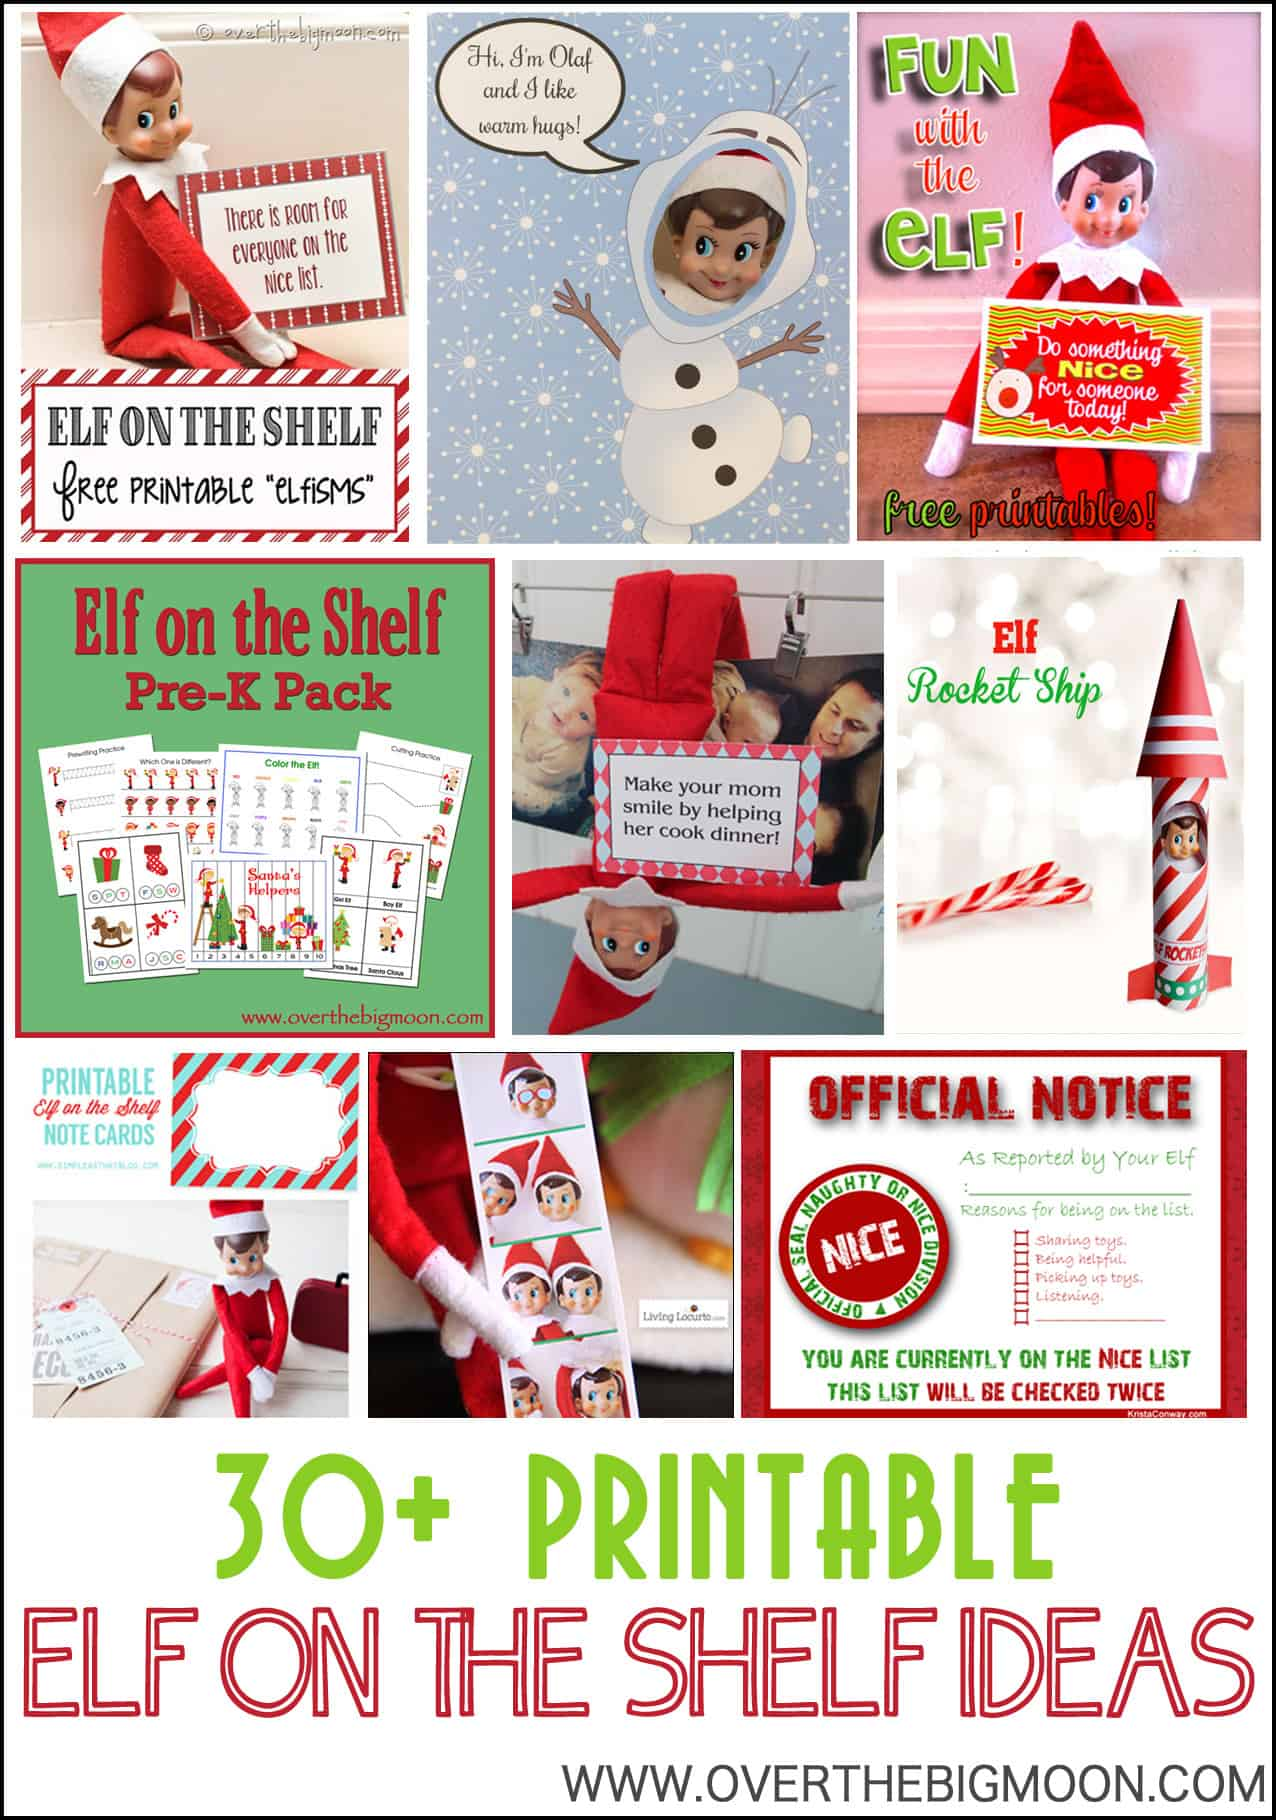 graphic about Elf on the Shelf Printable Props called 30+ Printable Elf upon the Shelf Recommendations Higher than The Substantial Moon